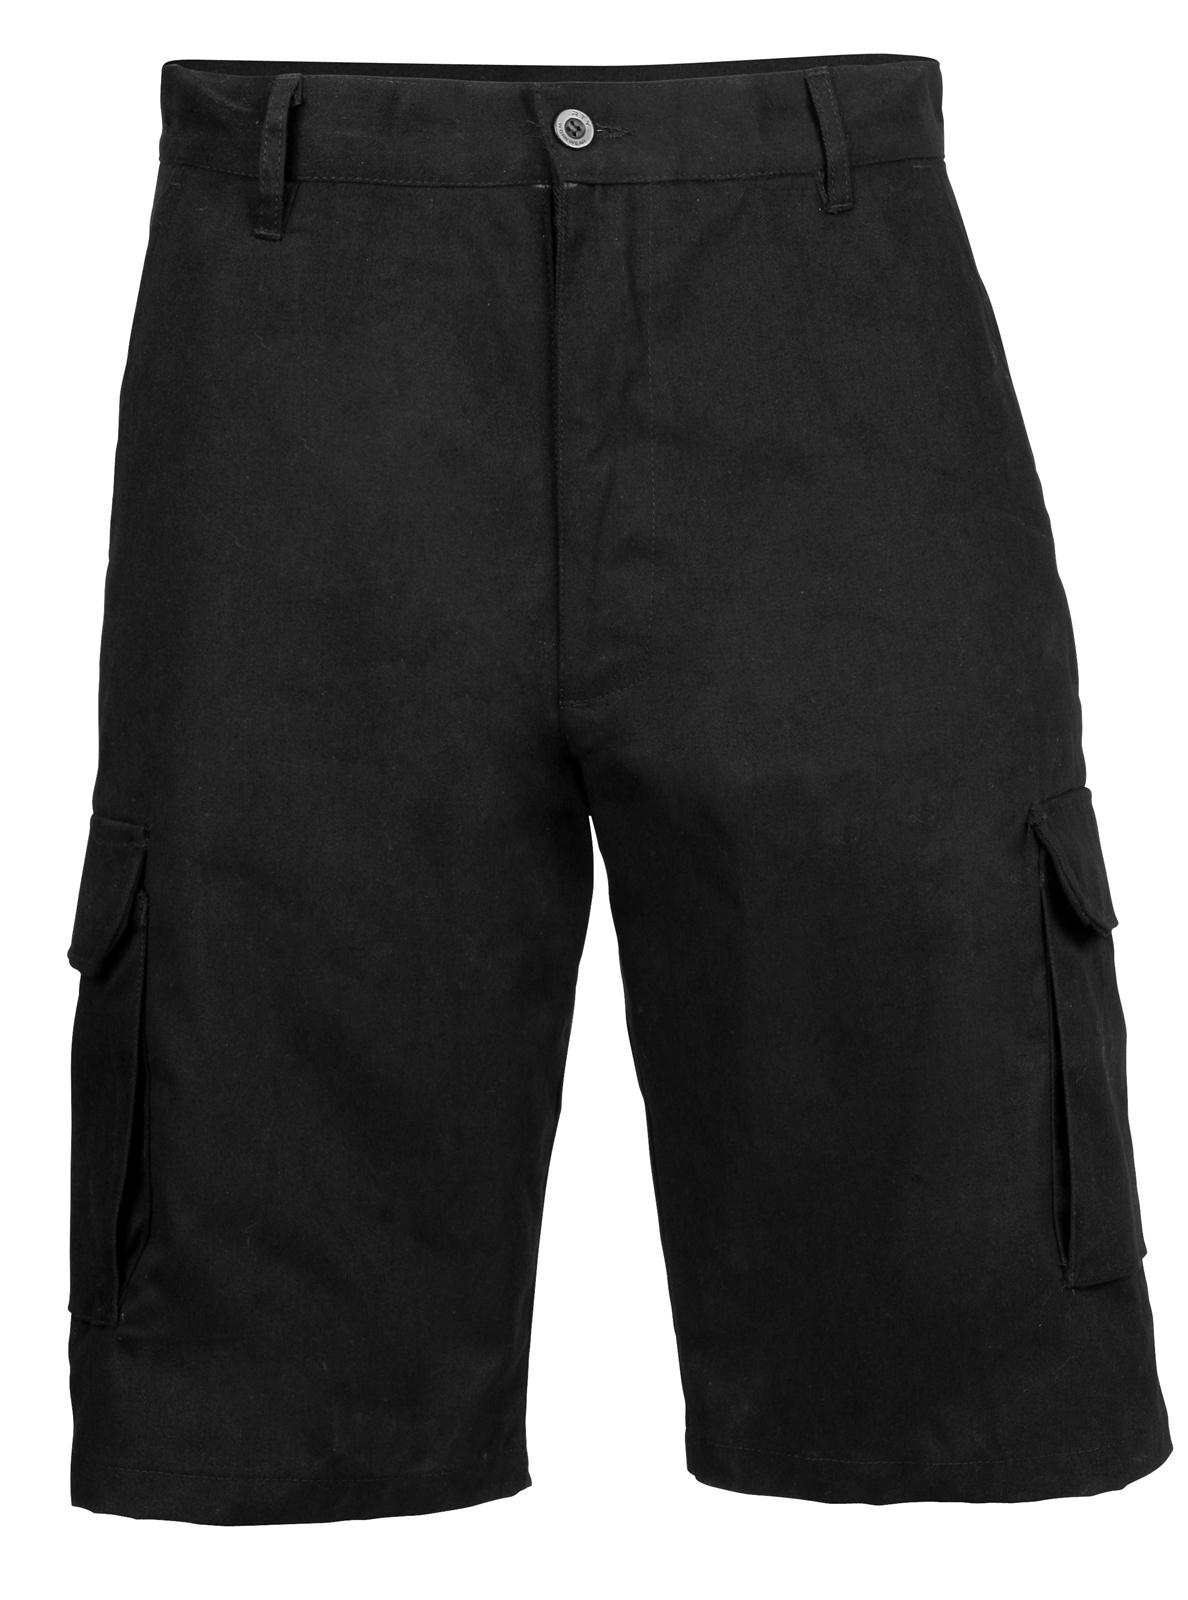 new rty mens work wear cotton casual cargo shorts in black